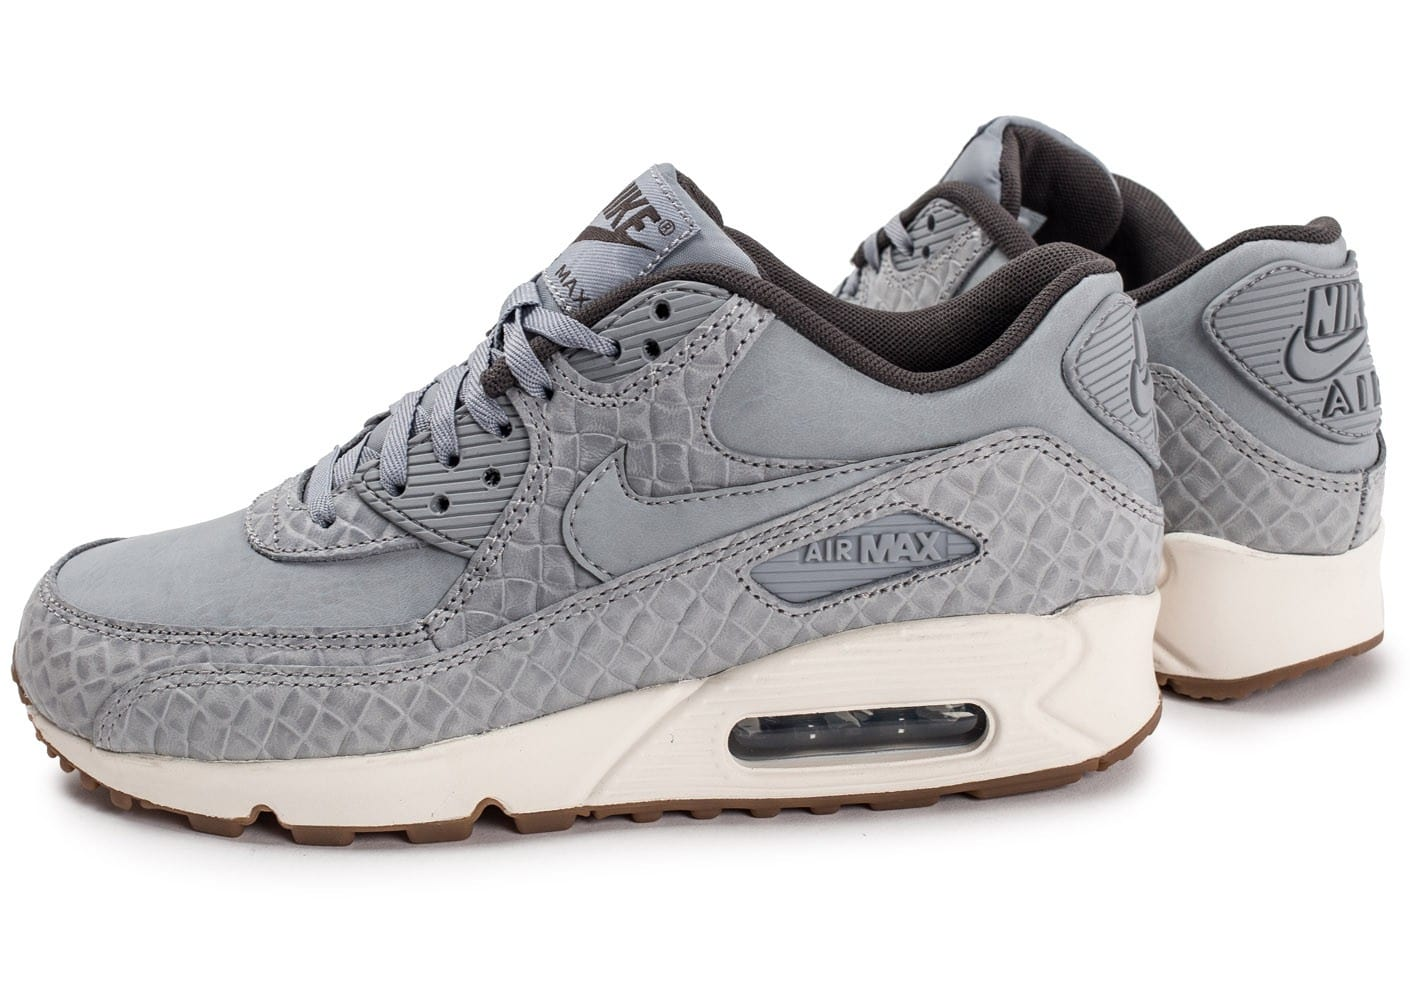 nike air max 90 premium grise chaussures femme chausport. Black Bedroom Furniture Sets. Home Design Ideas